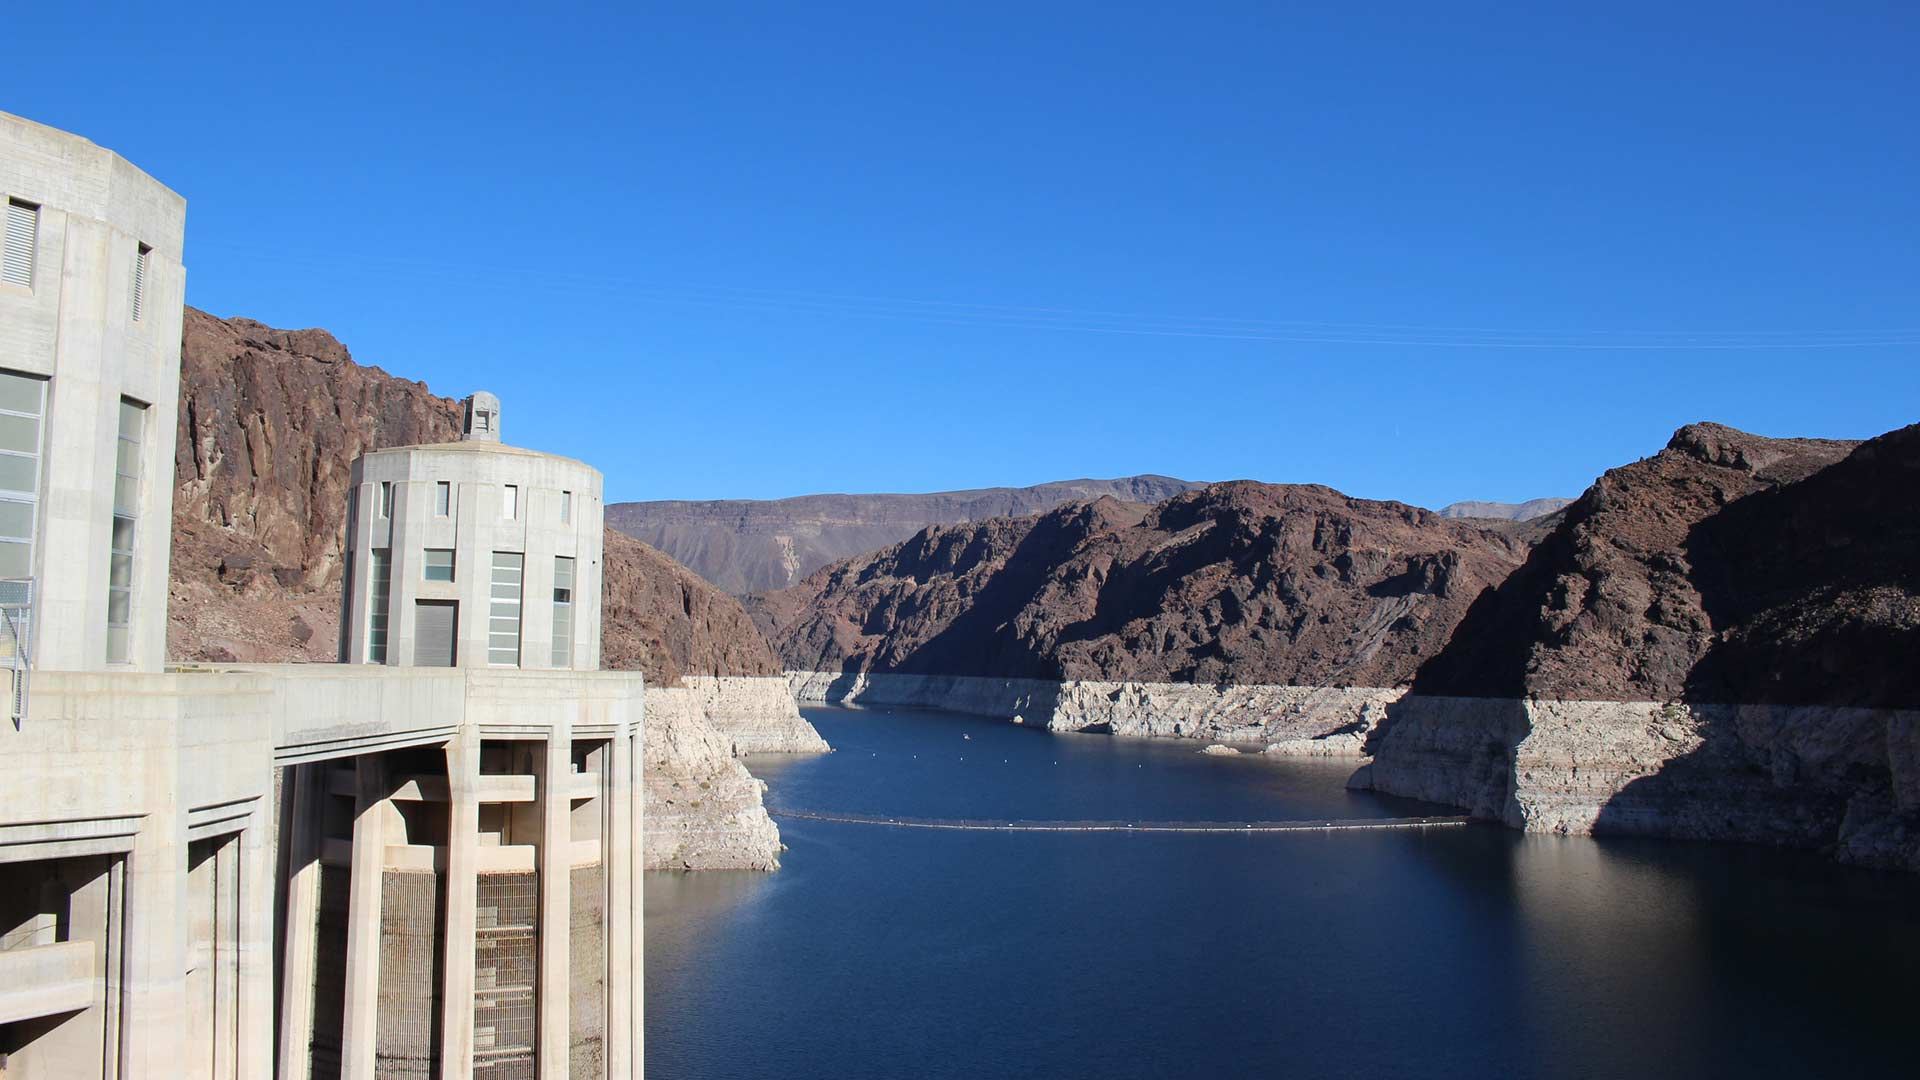 Lake Mead outside Las Vegas, Nevada, serves as the Colorado River's largest reservoir and a key water source for Arizona, California, Nevada and Mexico.